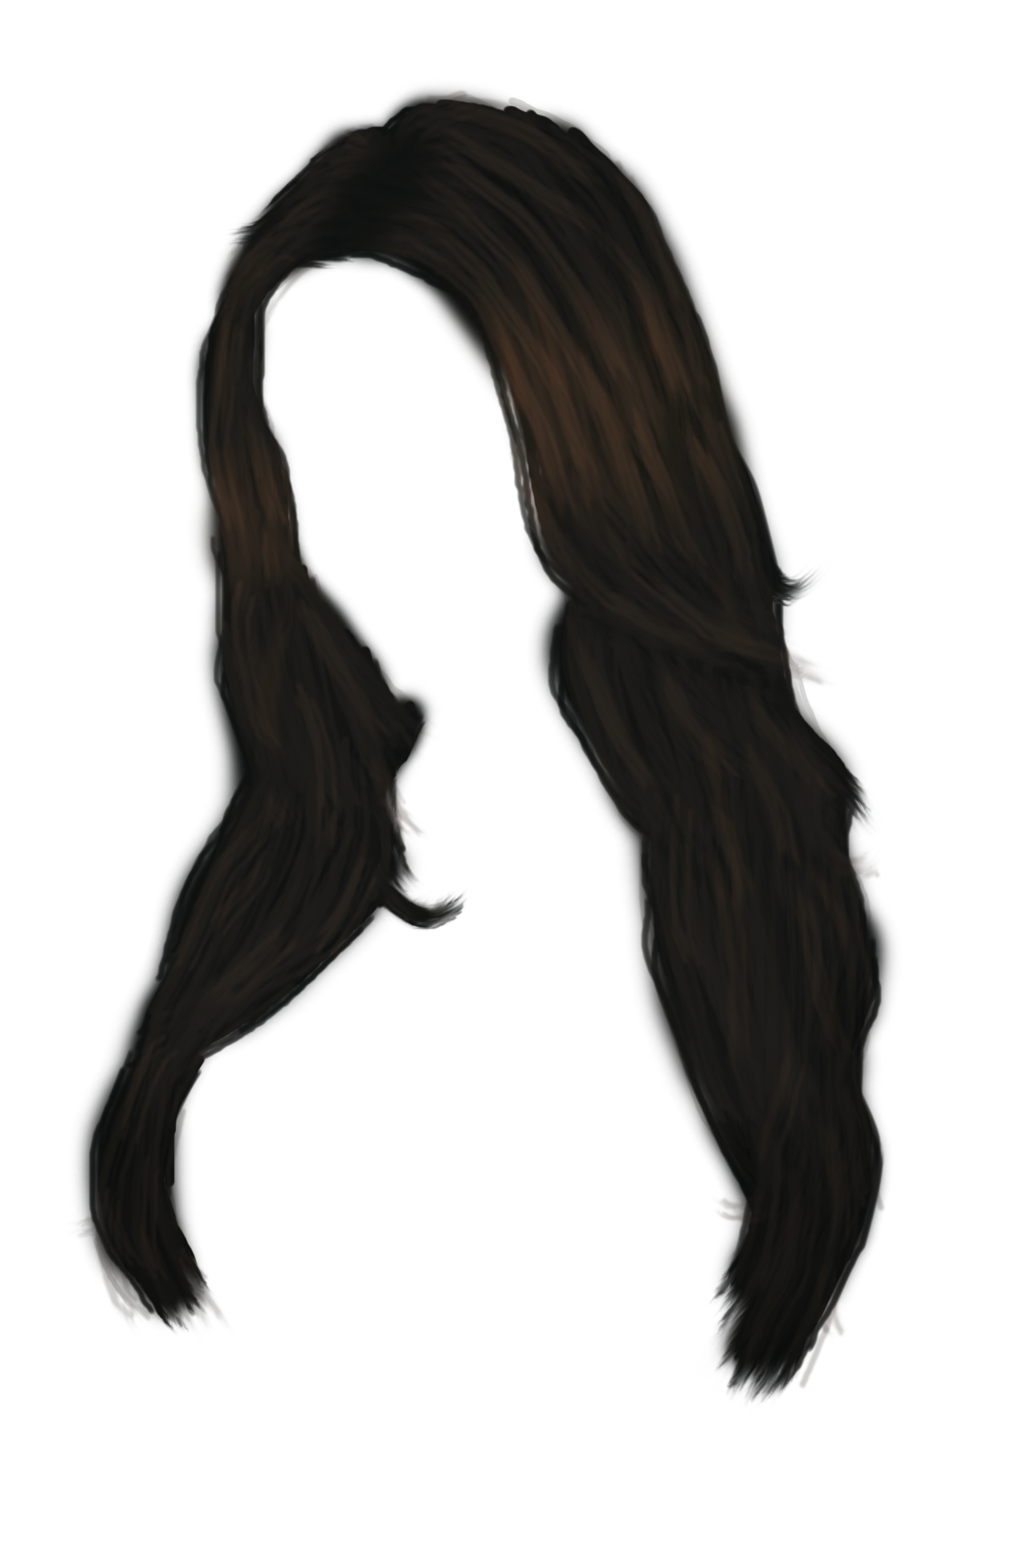 Hair clipart transparent background Image hair image PNG hair